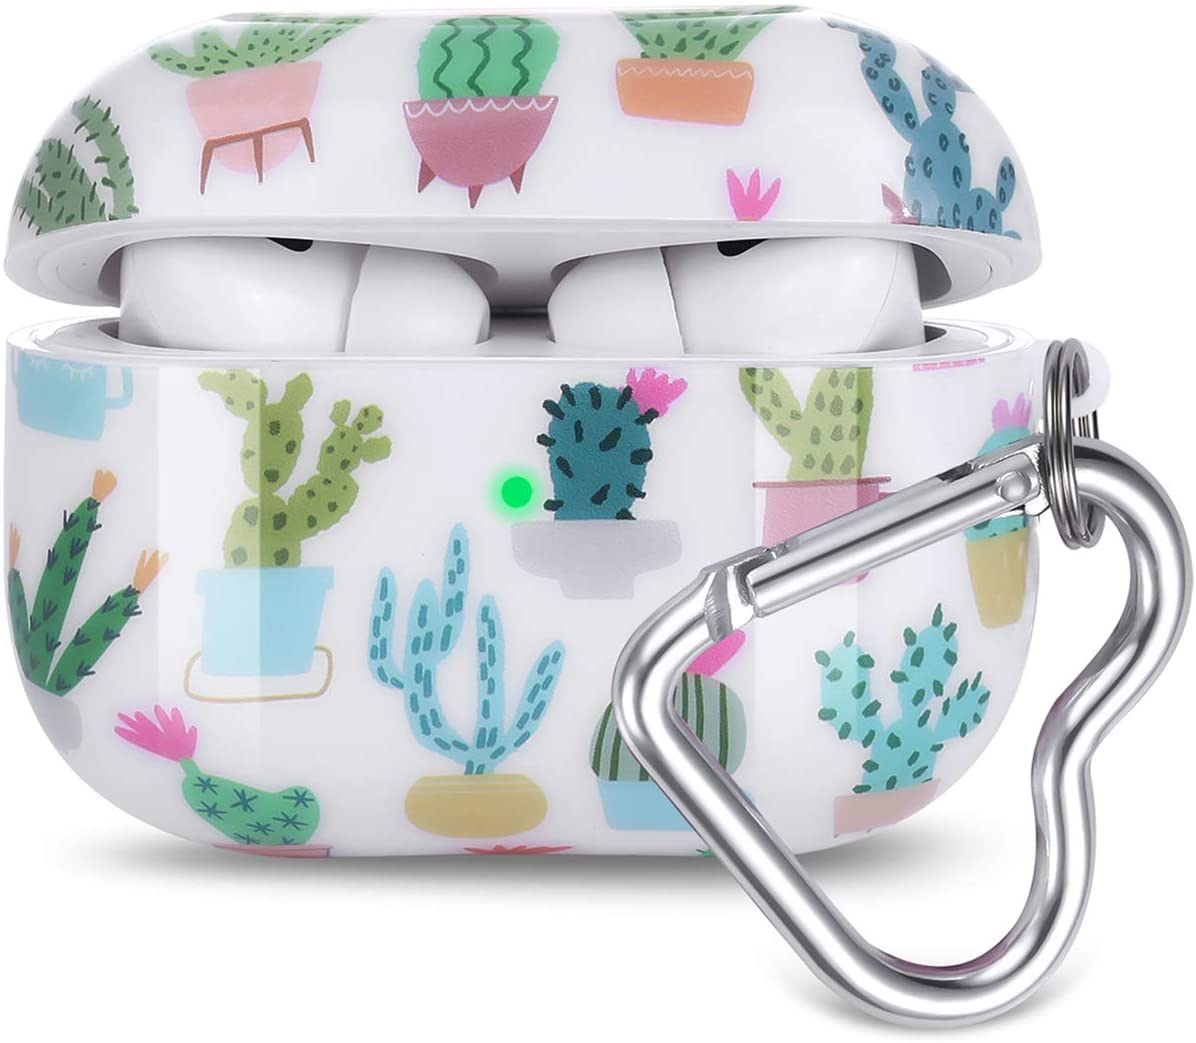 Airpods Pro Case, Olytop Cute Cactus Airpods Pro Protective Case Cover Printed Hard Skin Women Girl for Apple Airpods 3 Charging Case with Heart-Shaped Keychain AirPods Pro Accessories Set - Cactus